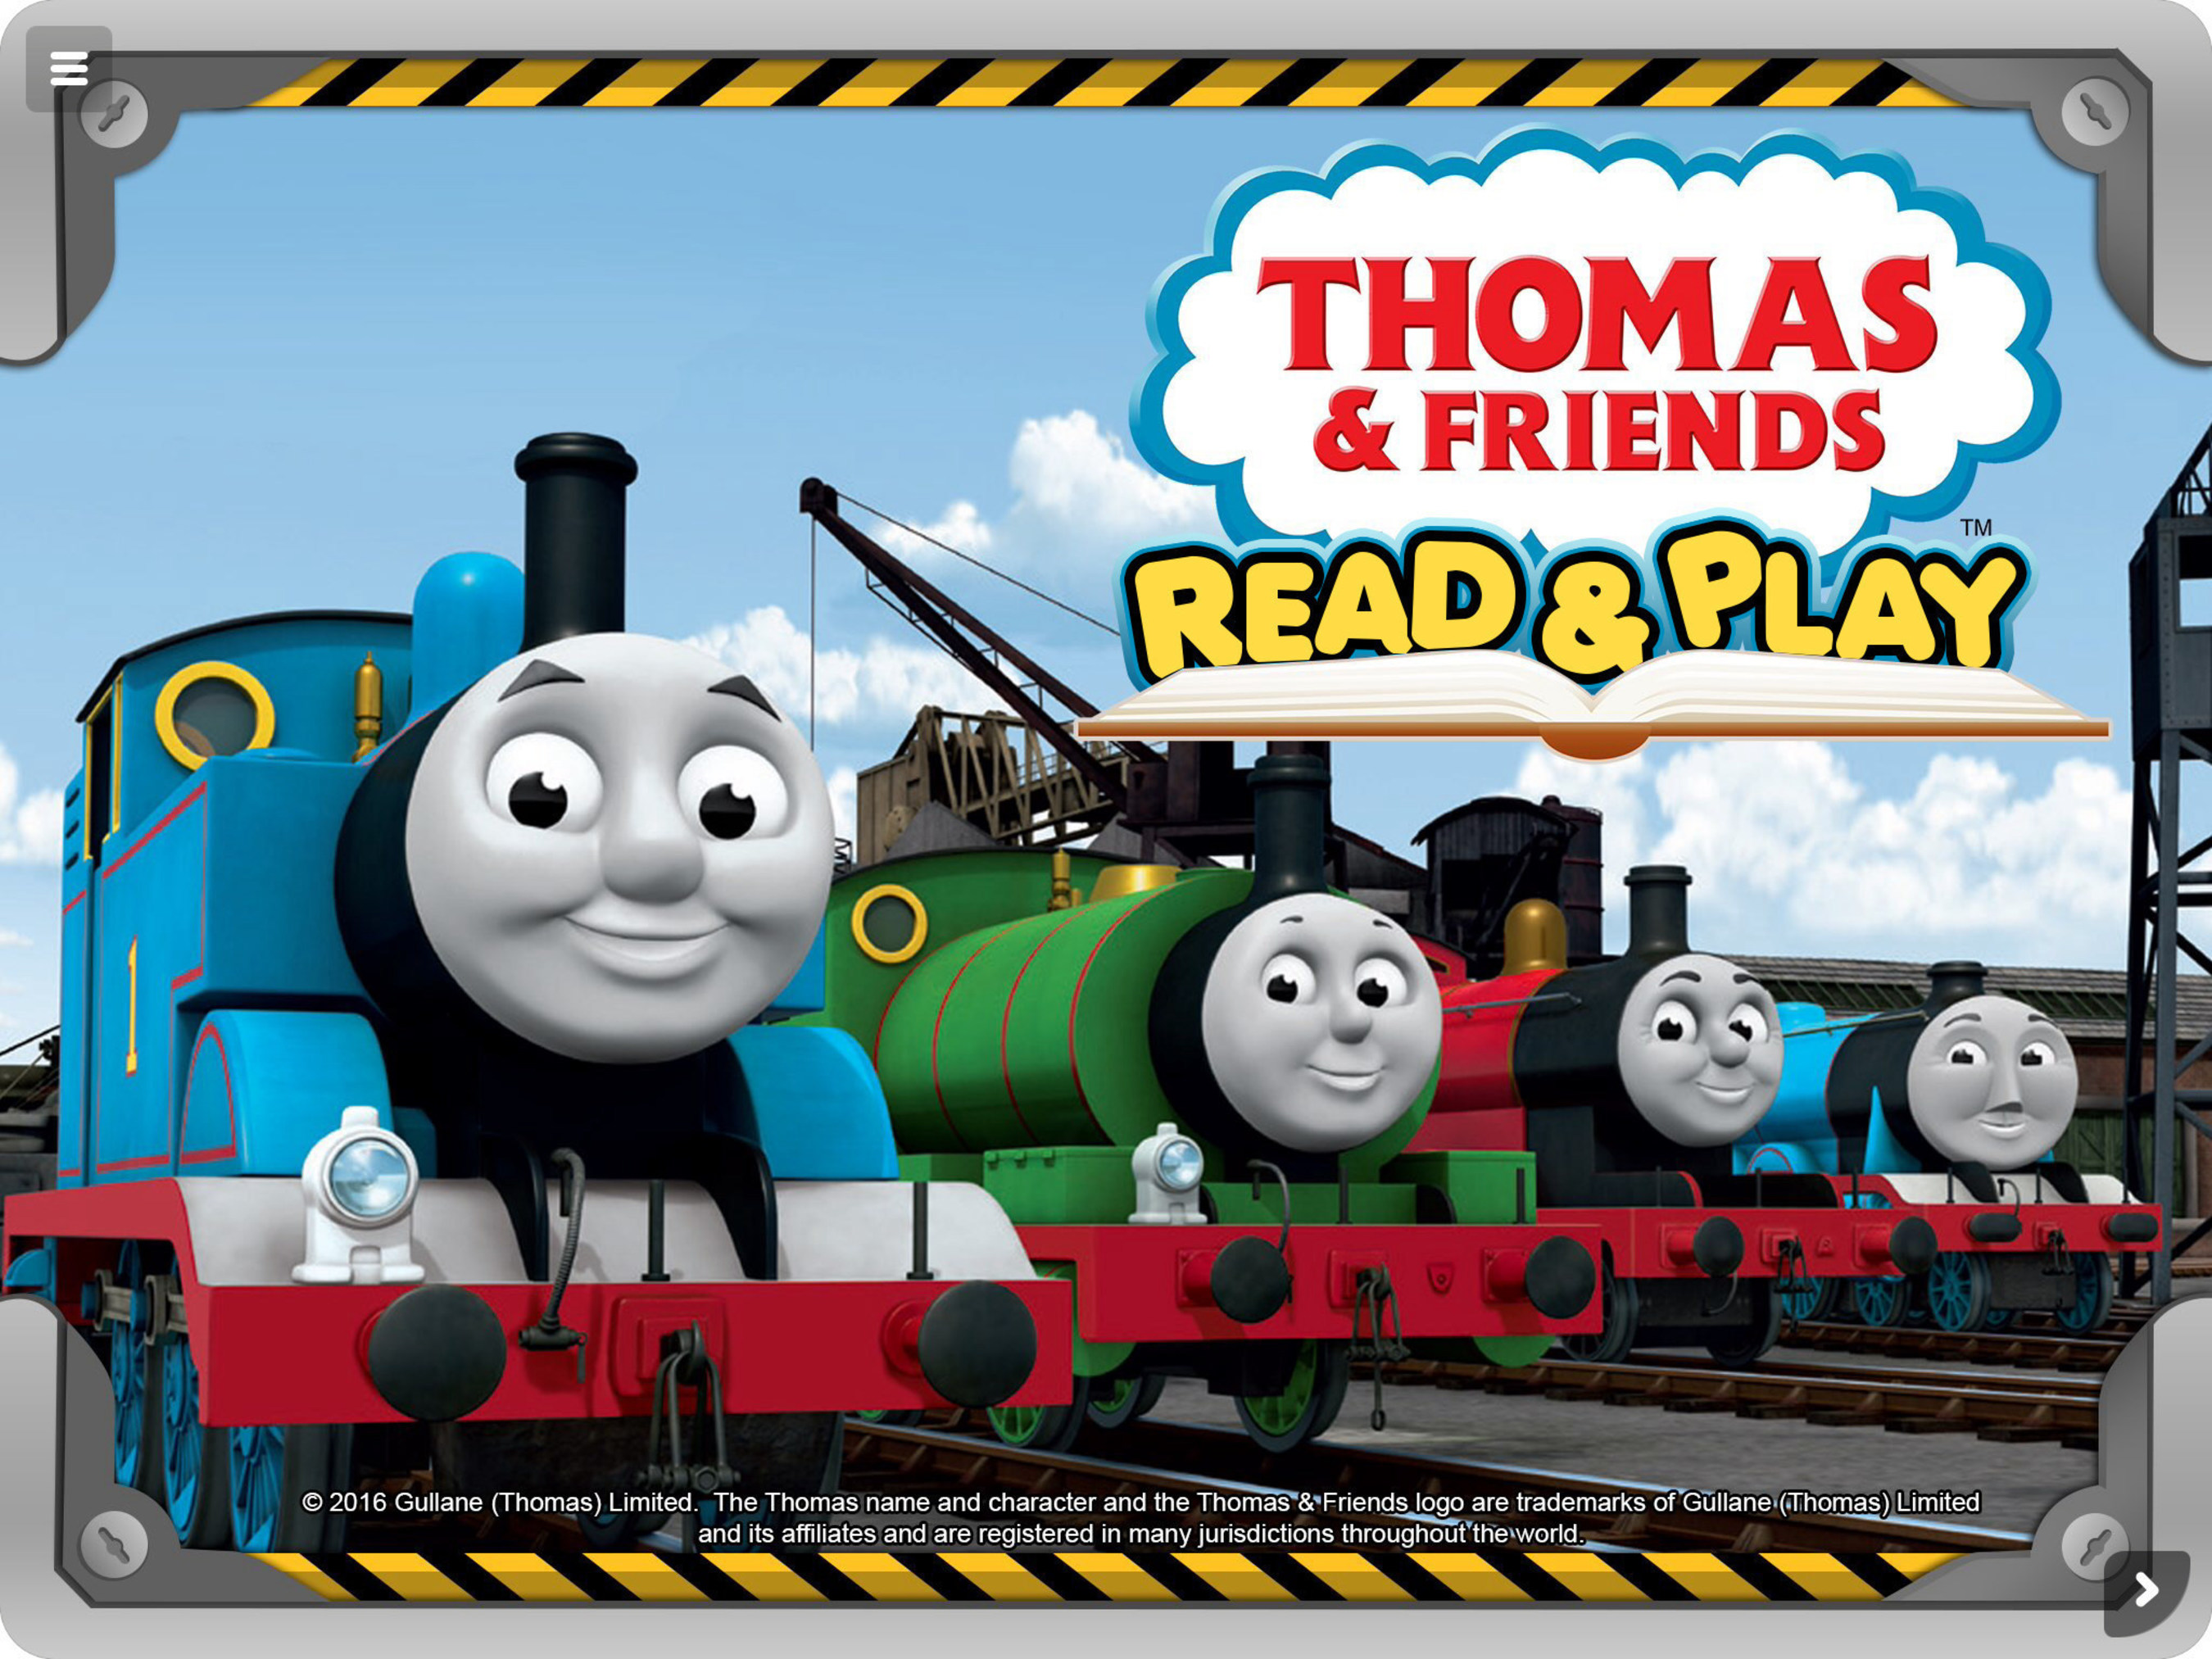 Thomas Friends Read Play Offers Many Educational And Entertainment Activities For